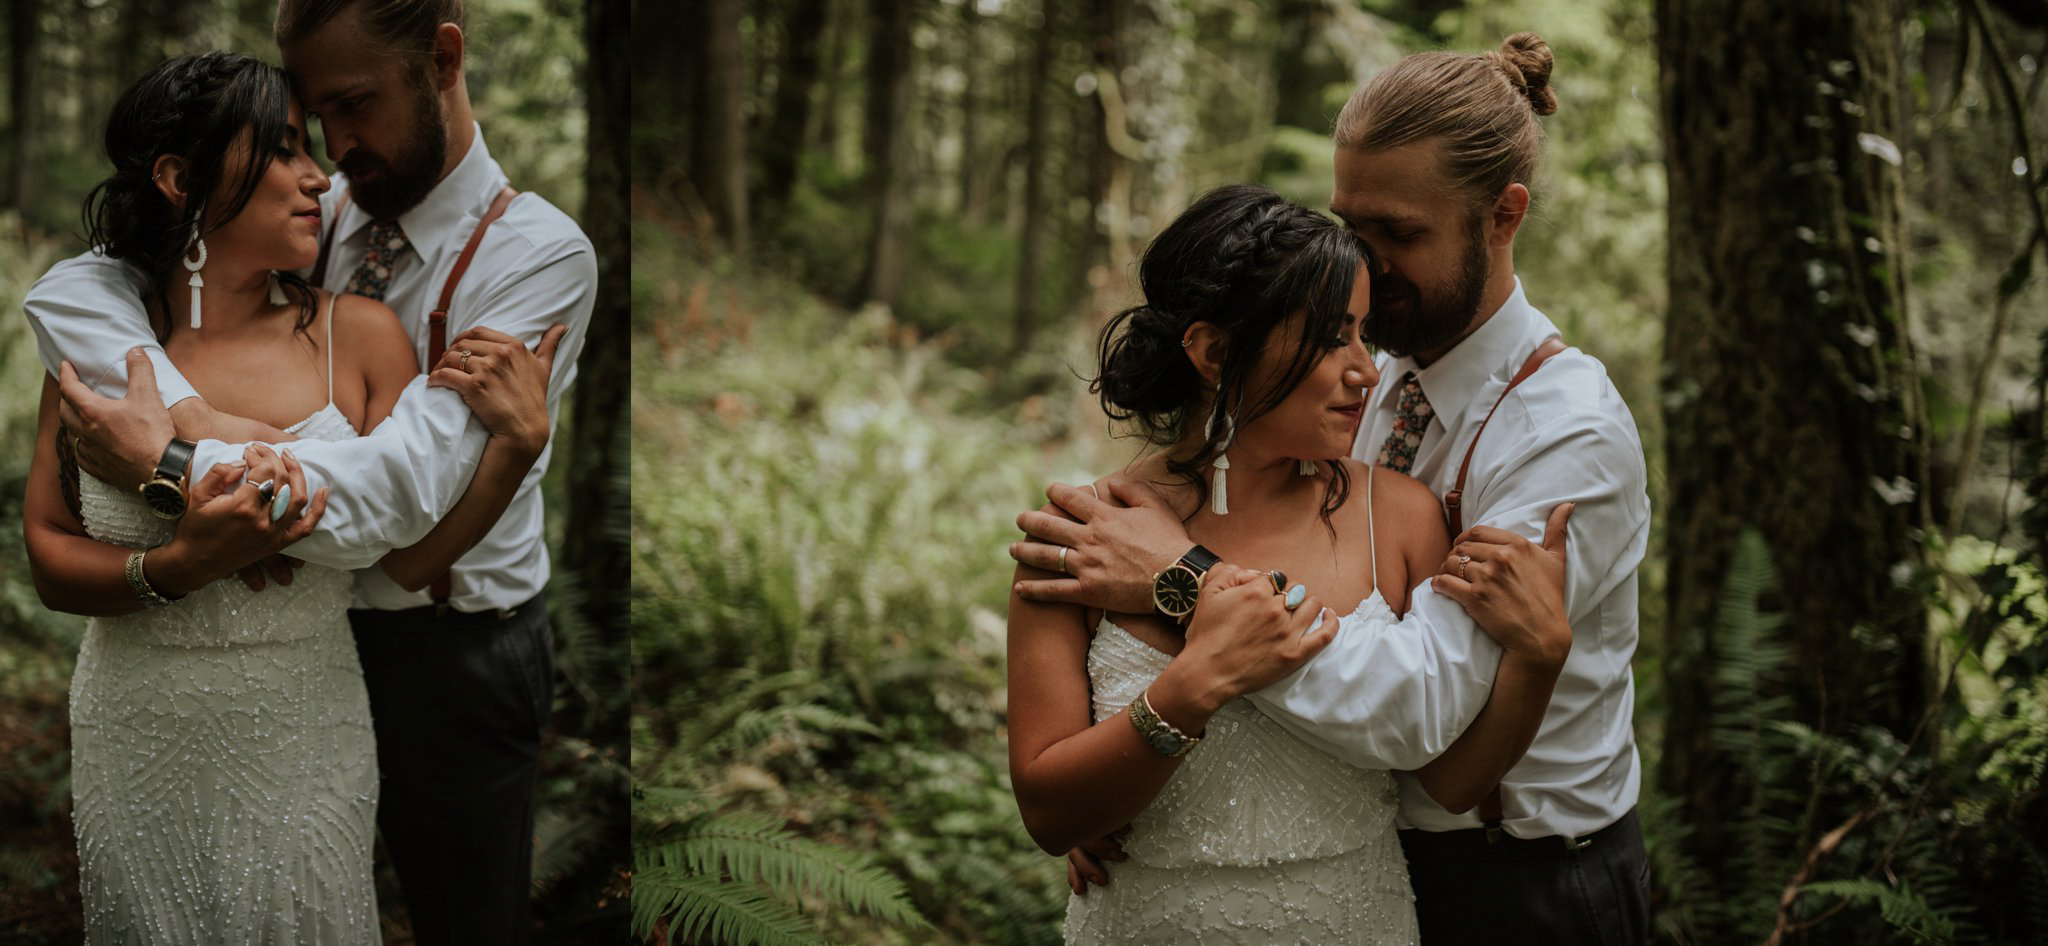 intimate-boho-campfire-wedding-shangri-la-on-the-green-seattle-wedding-photographer-caitlyn-nikula-photography-75.jpg